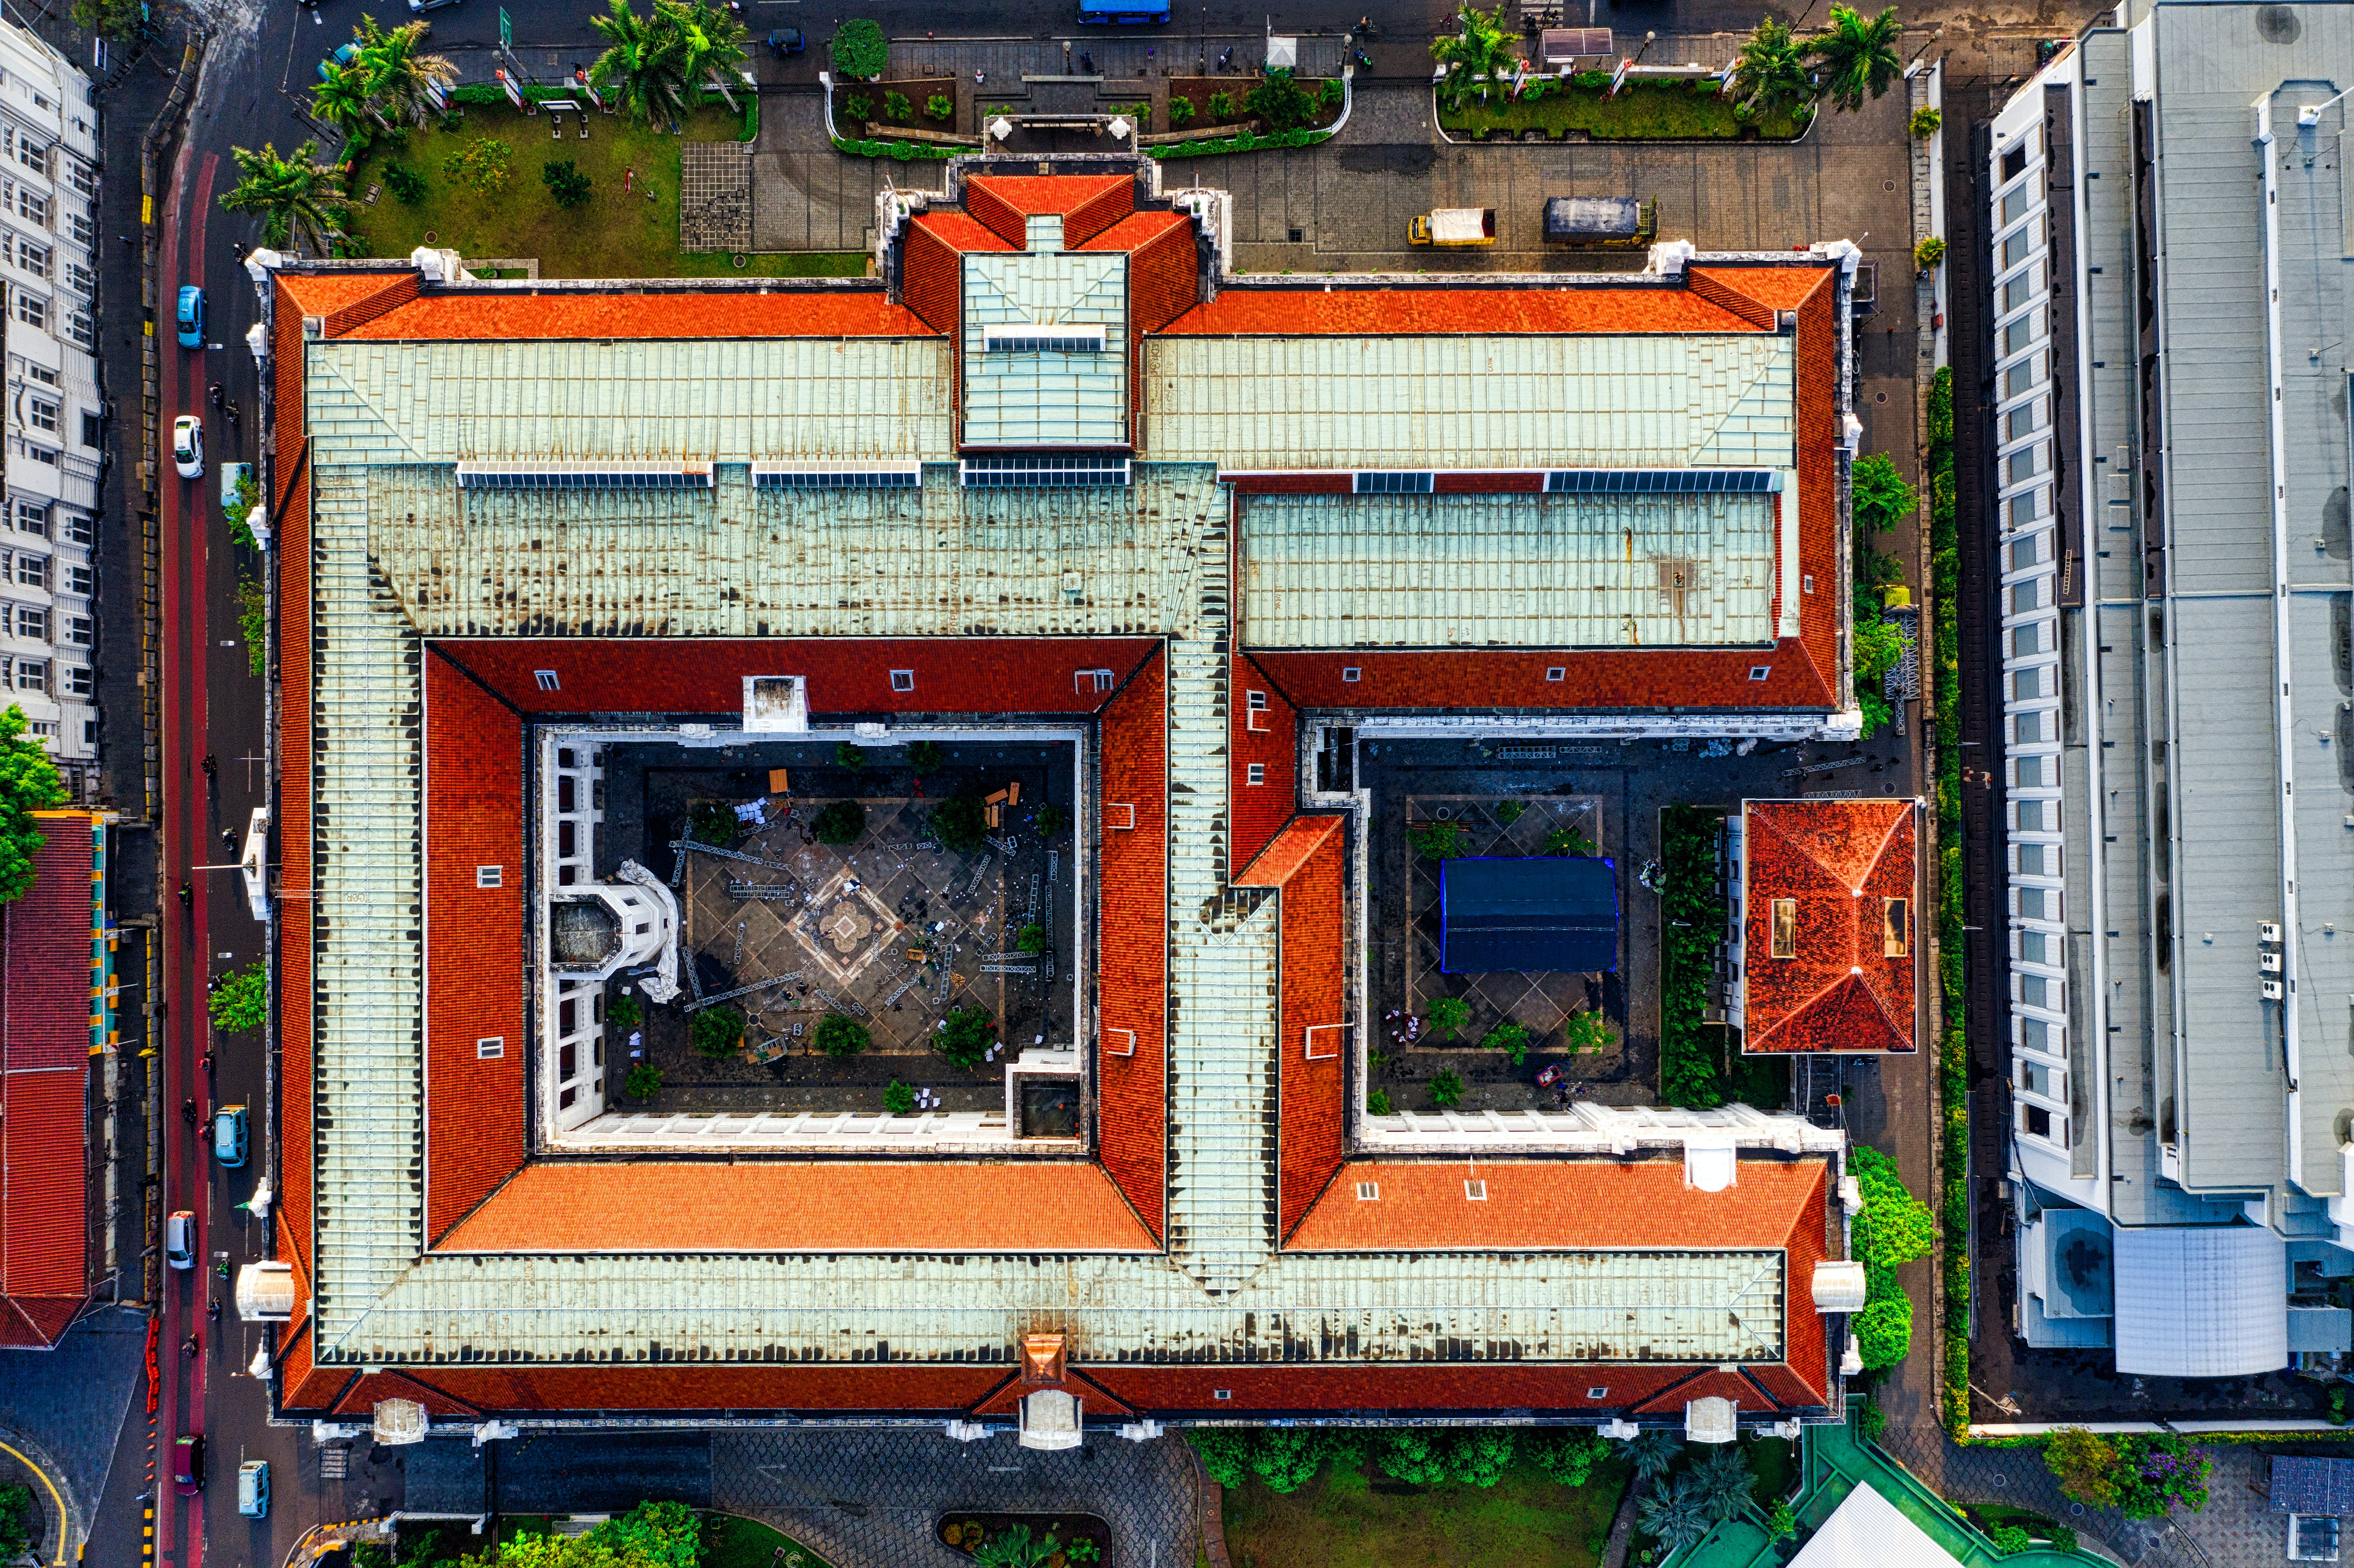 Top View of Red and White Building